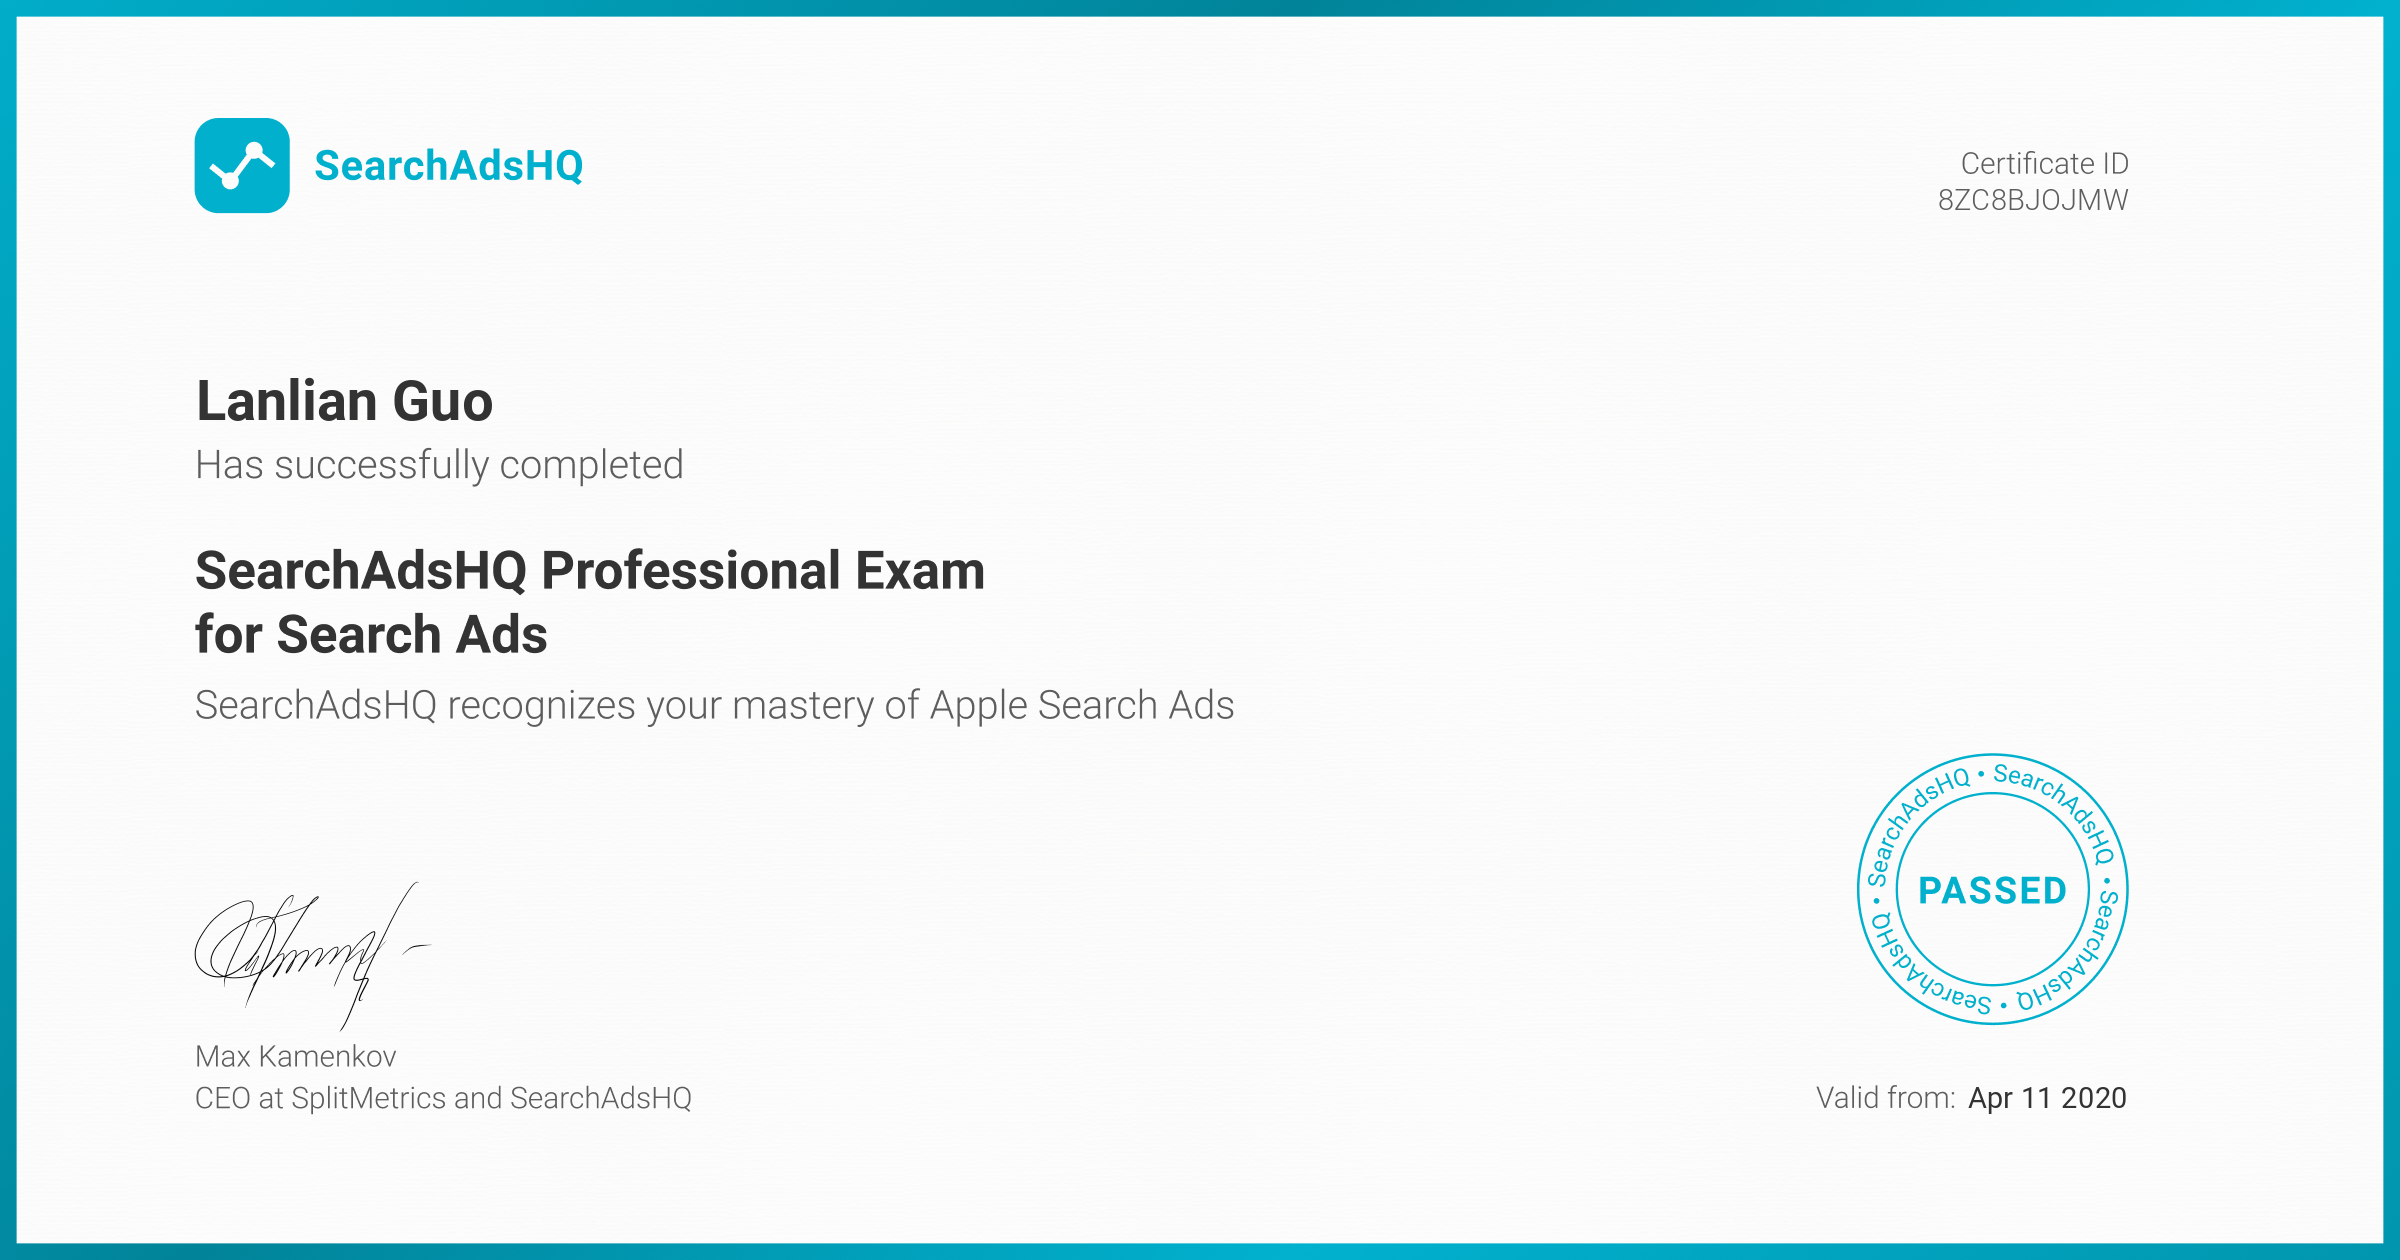 Certificate for Lanlian Guo | SearchAdsHQ Professional Exam for Search Ads